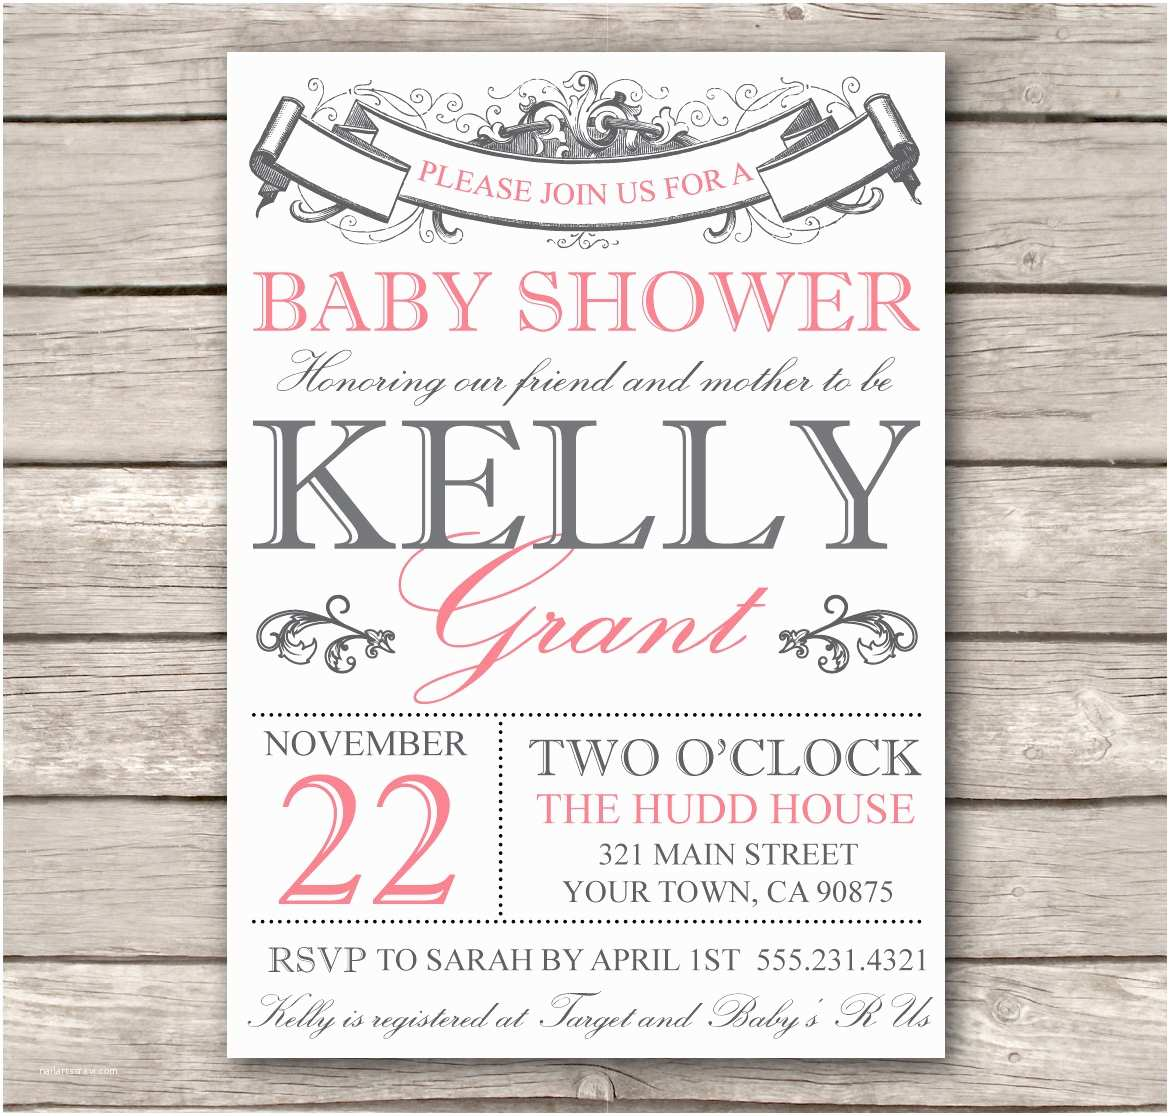 Make Your Own Wedding Shower Invitations Free Free Printable Baby Shower Invitations Templates